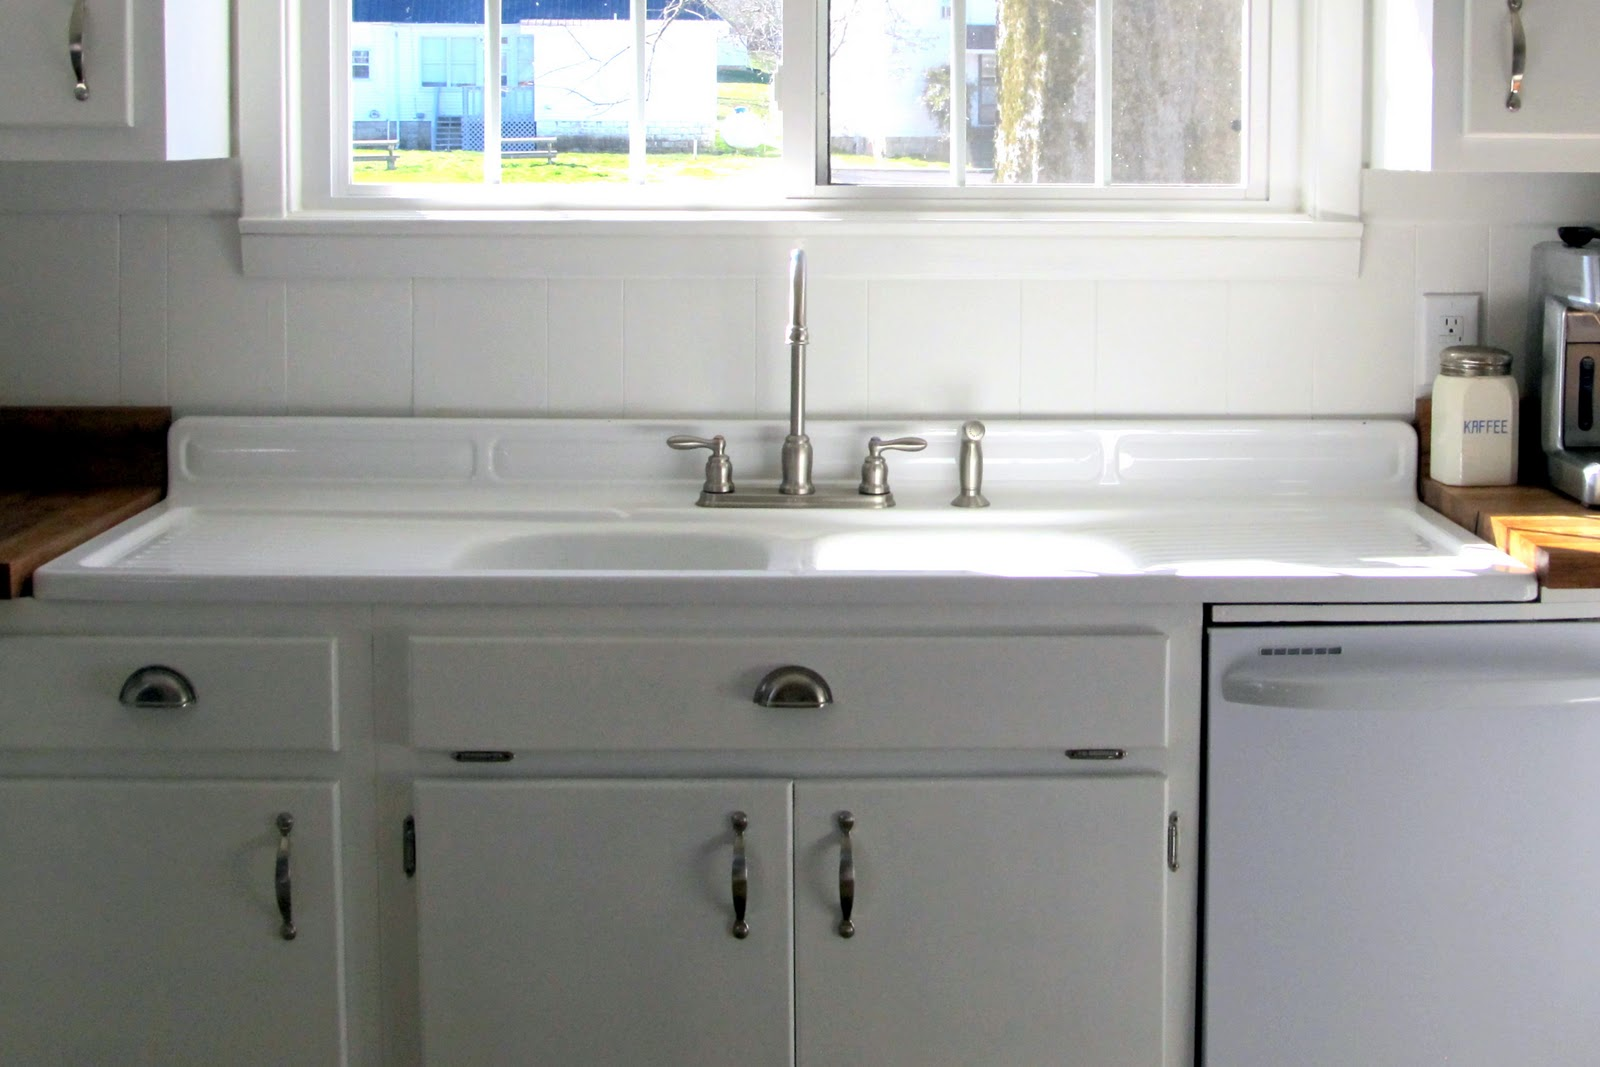 Related image with Farmhouse Kitchen Sink With Drainboard